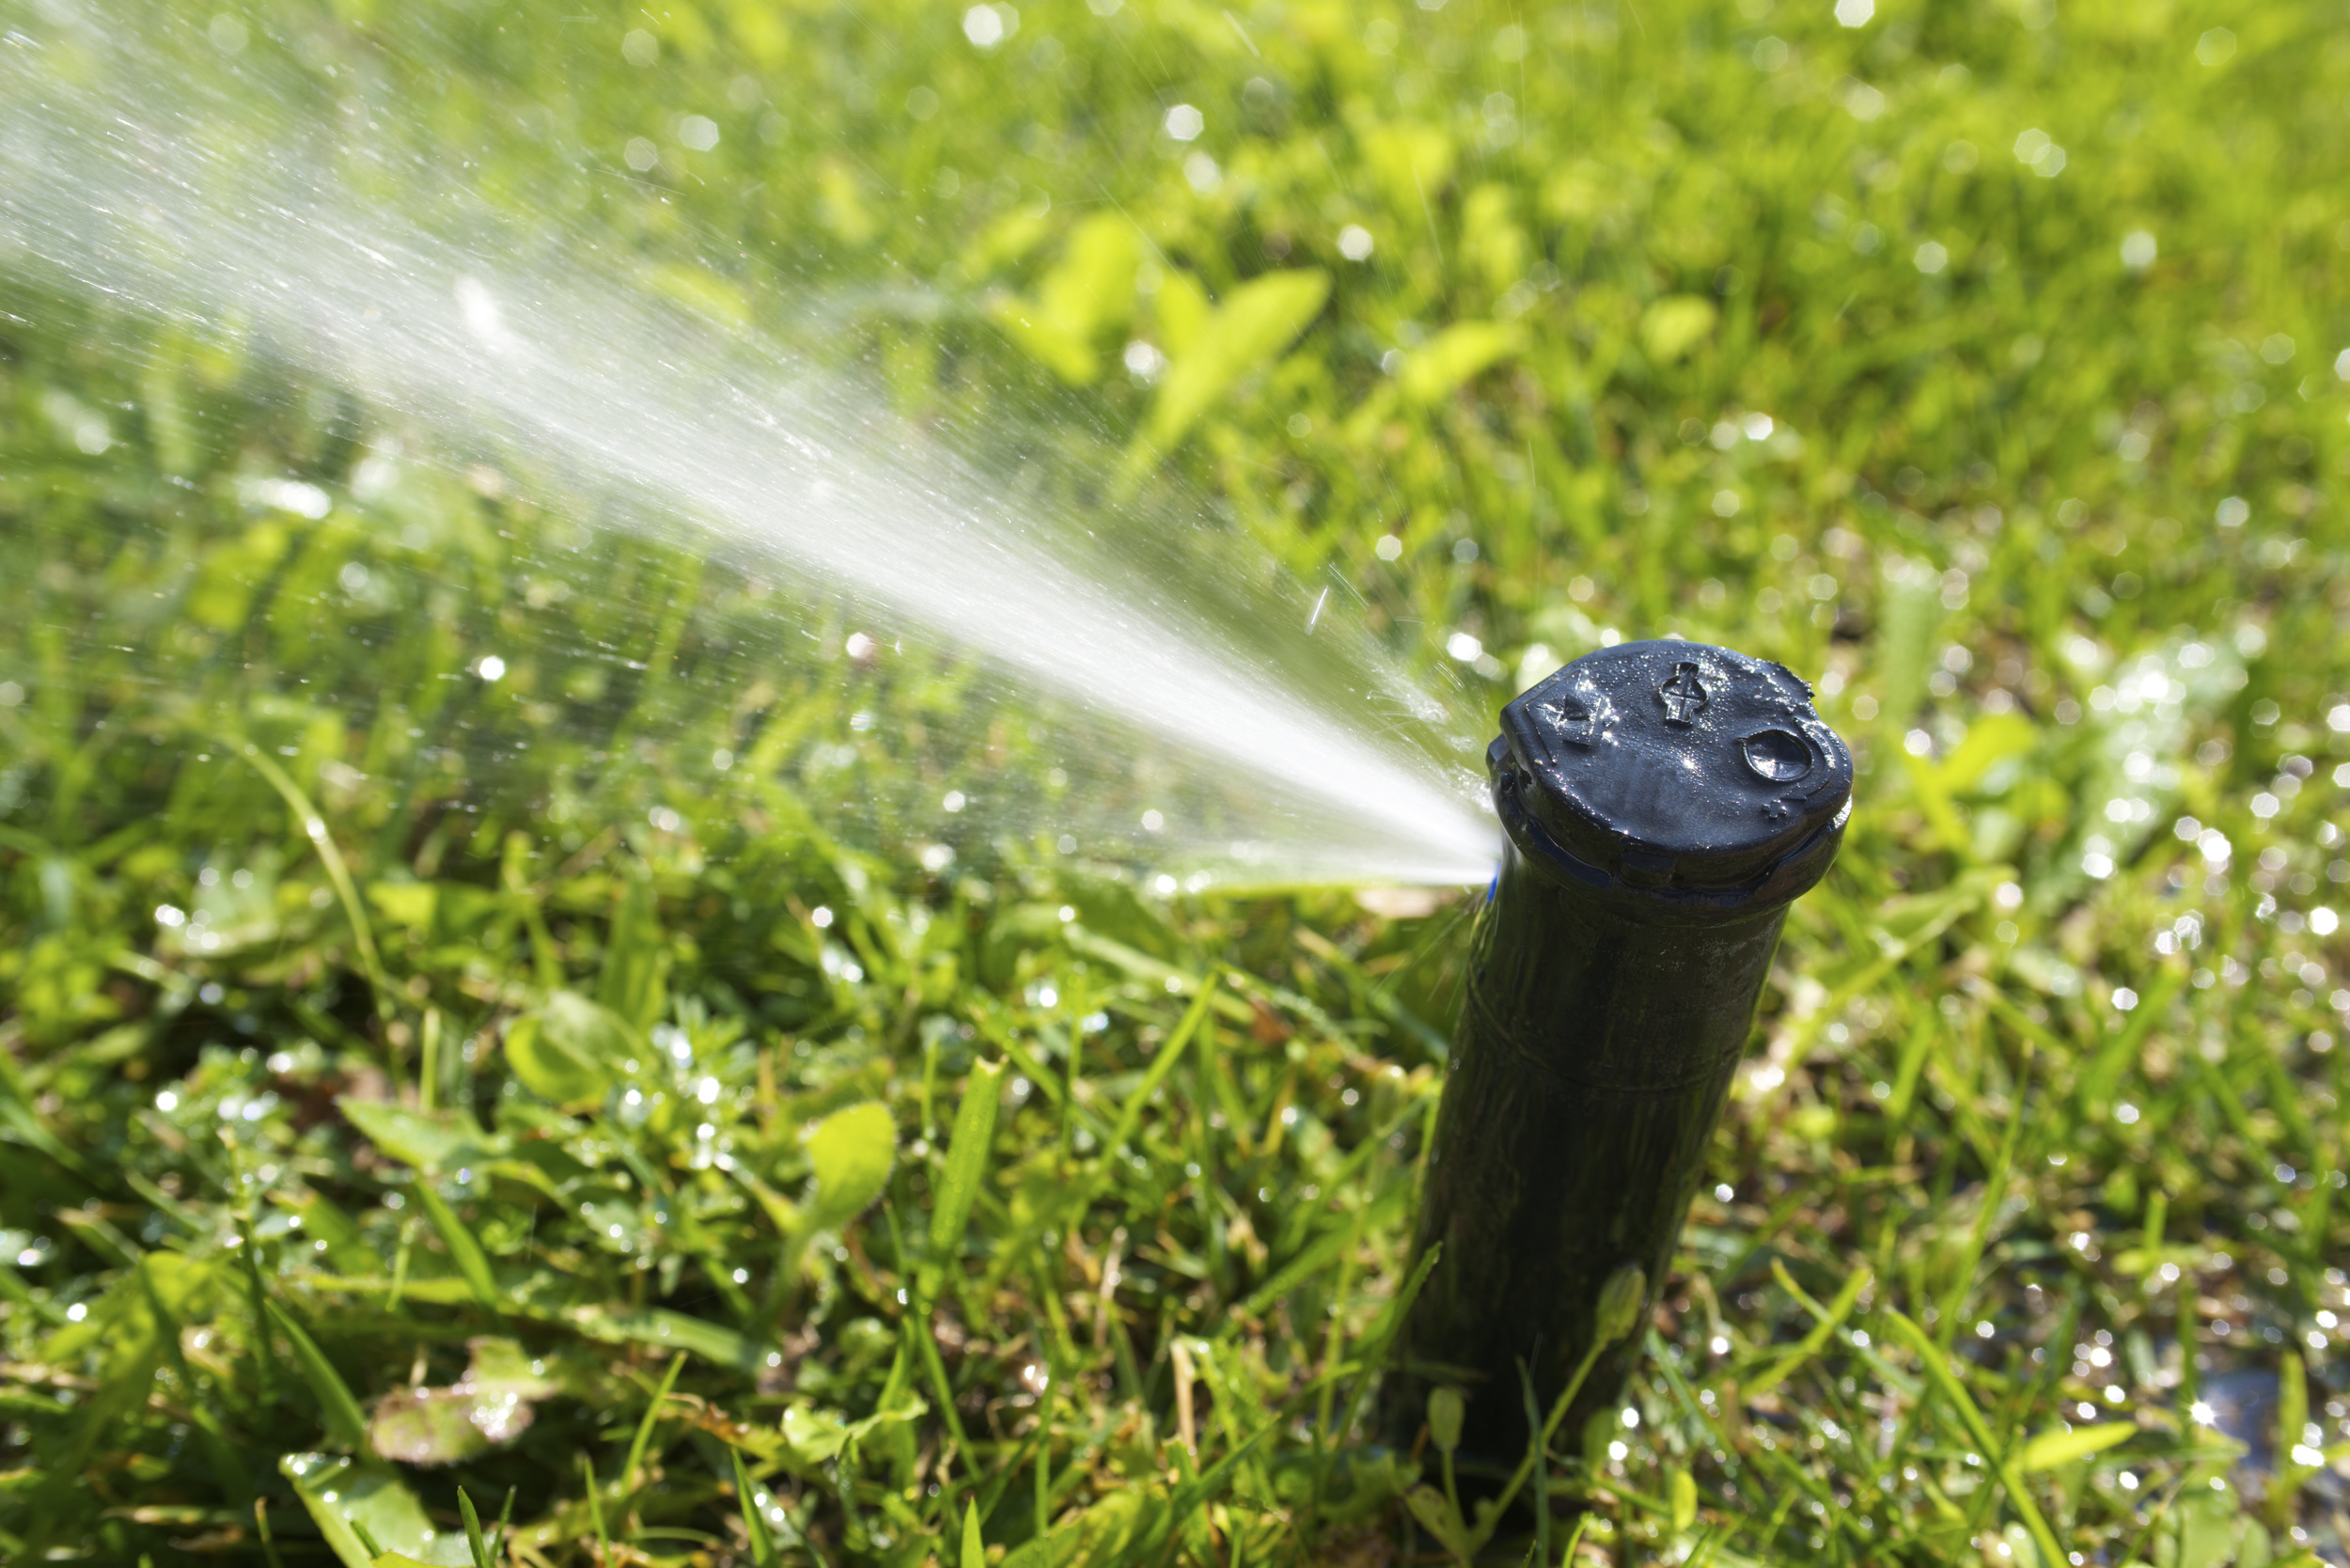 All of our ThatchPro™ products can be applied using irrigation systems. A simple supply line to your system is all it takes for a great lawn.